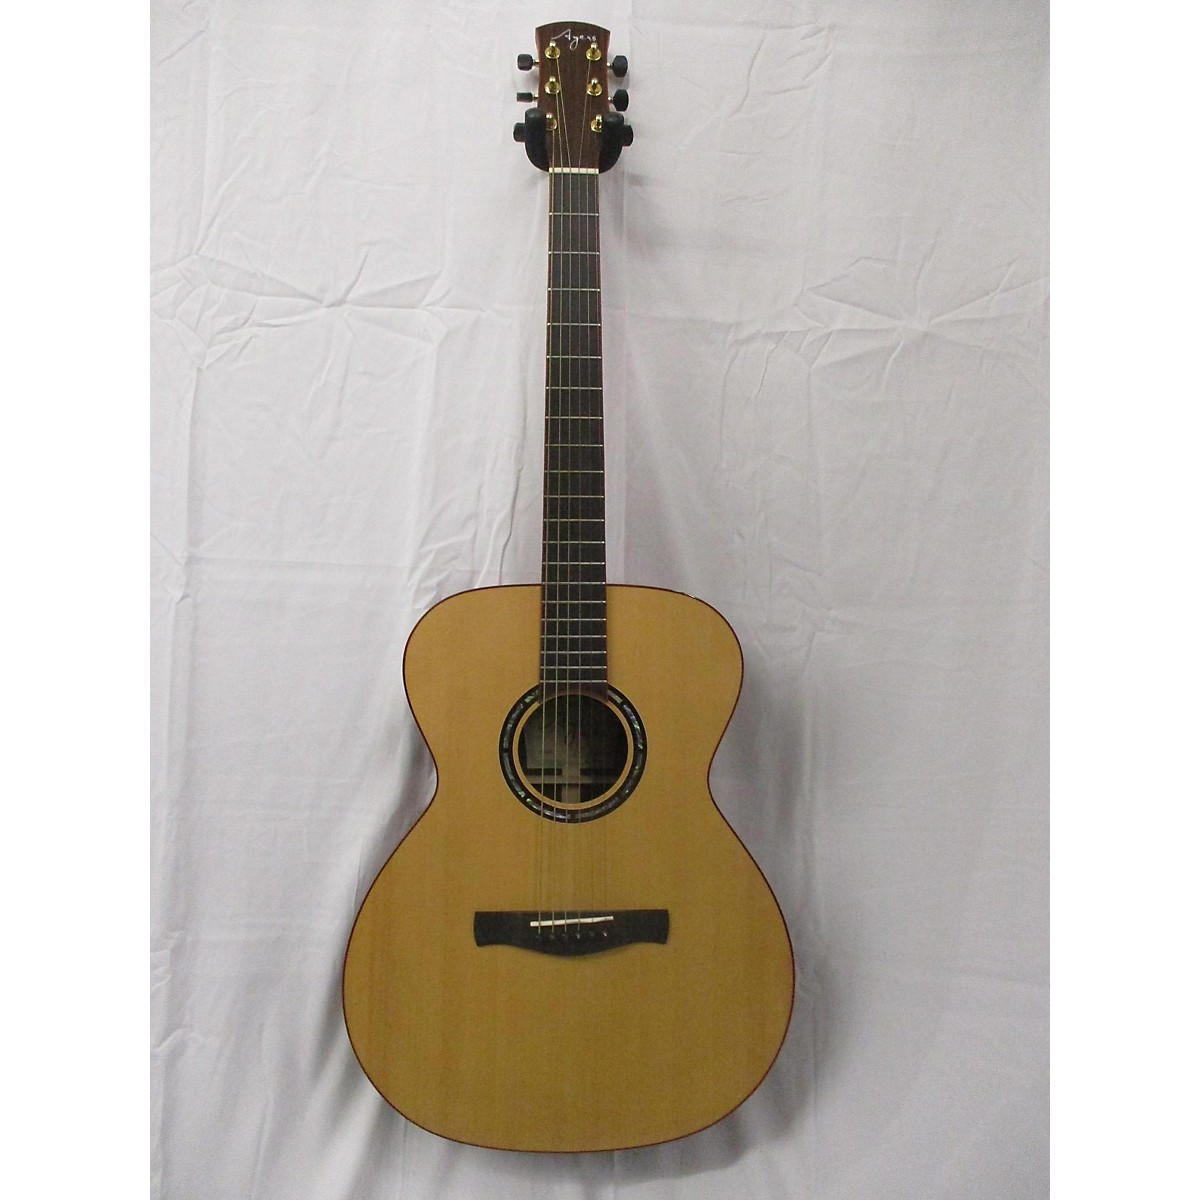 Ayers A-07 Acoustic Guitar